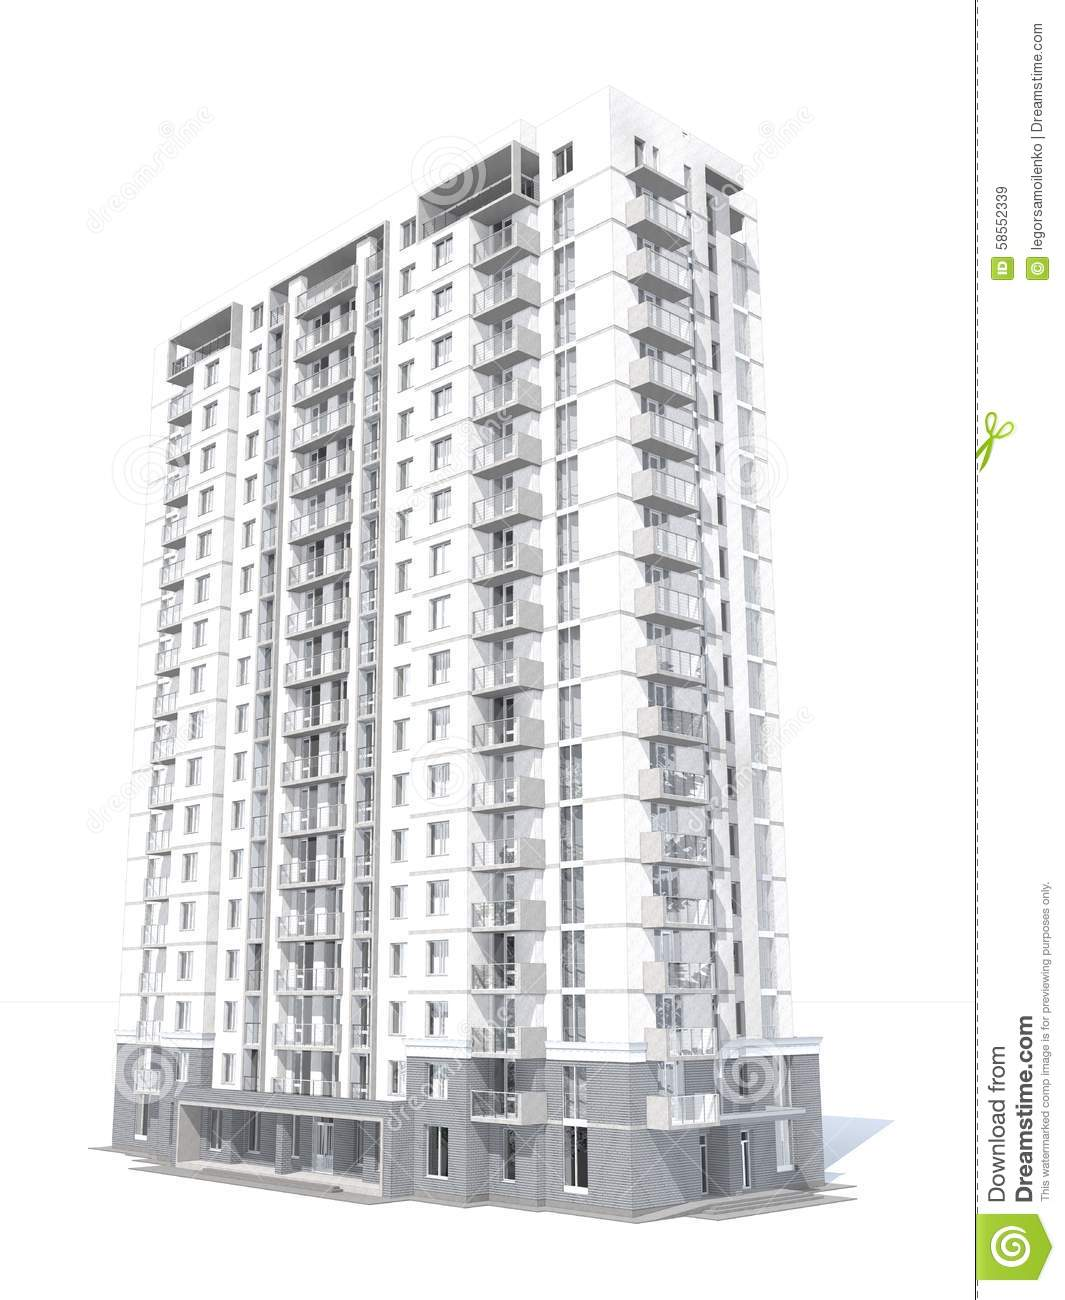 Contemporary Three Storied Residential Building: 3d Rendering Of Modern Multi-storey Residential Building